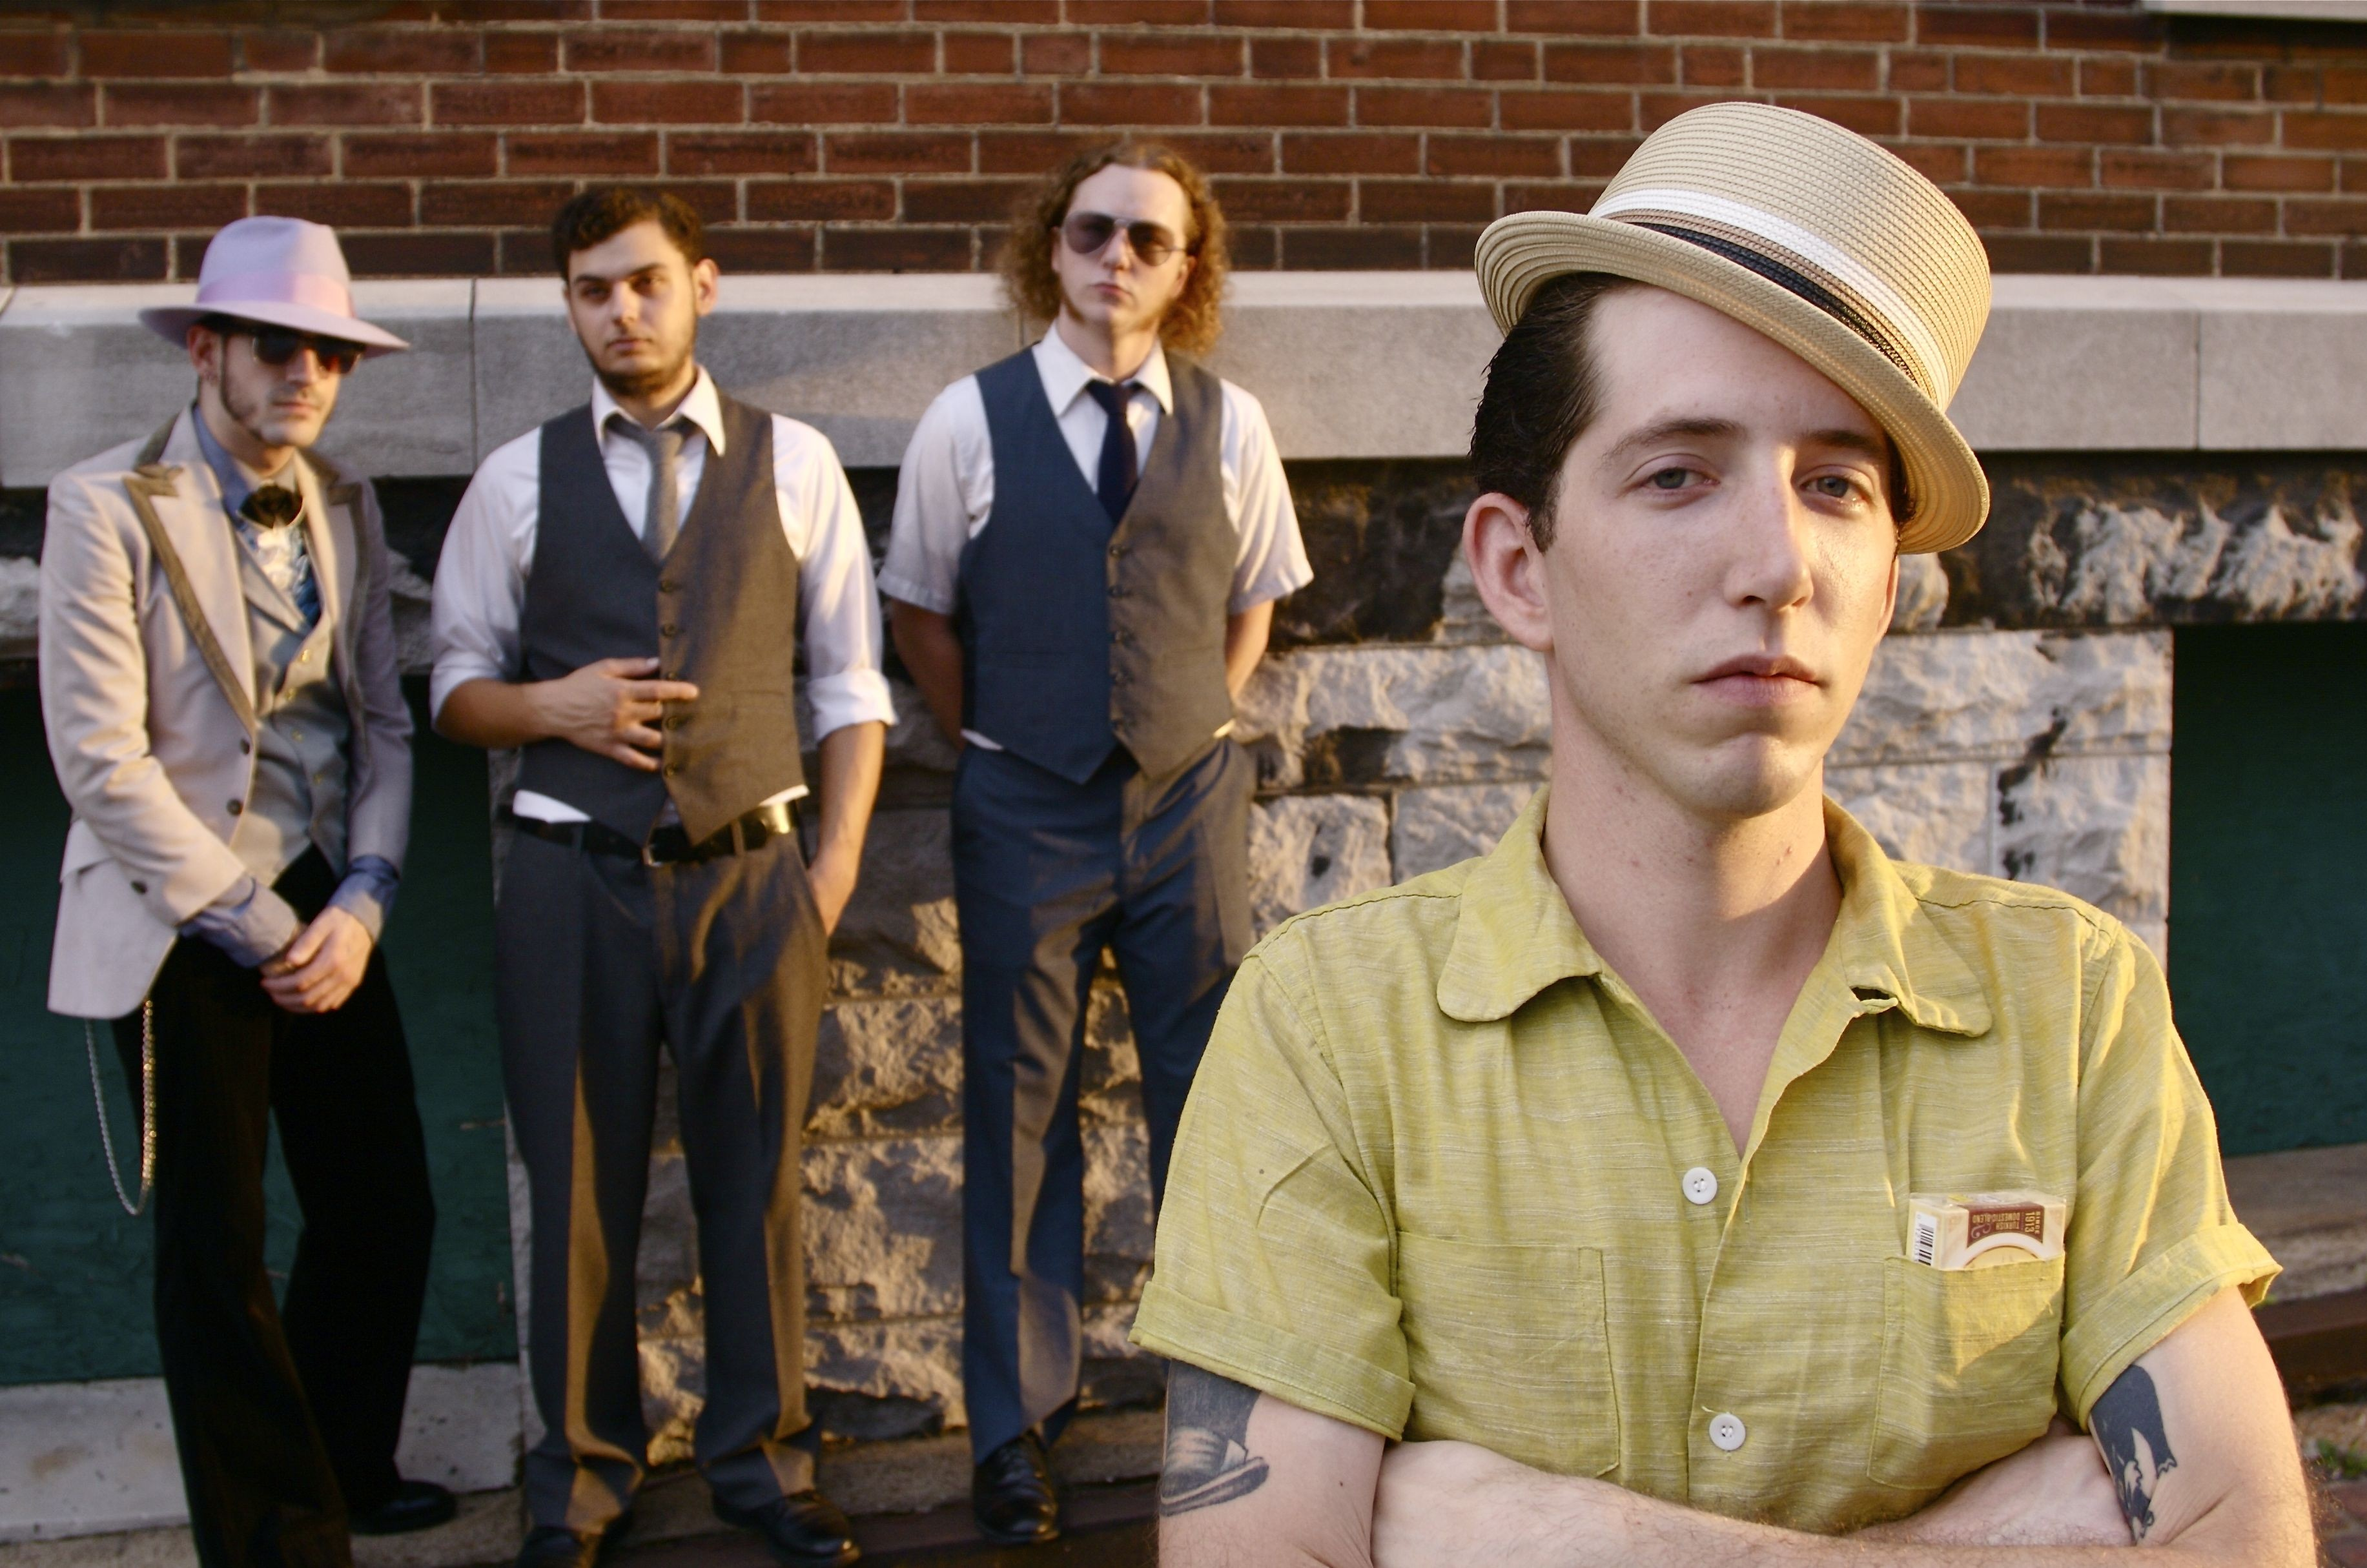 Pokey LaFarge and the South City Three